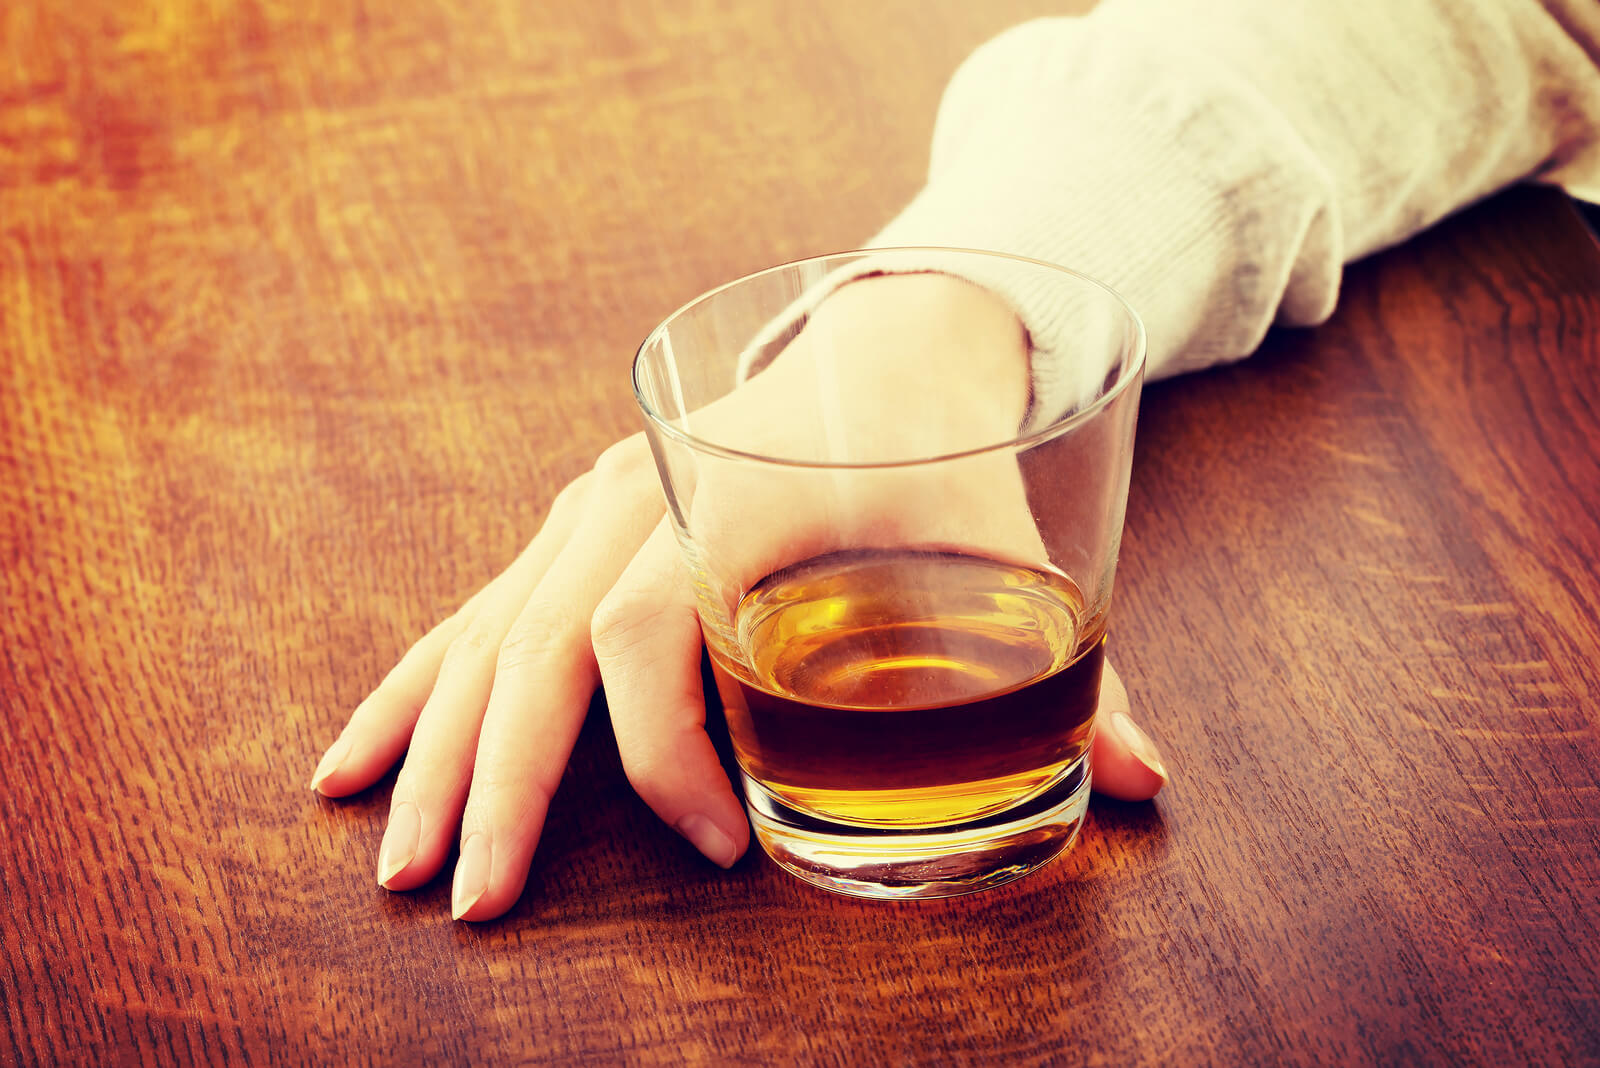 Can Alcohol Cause Kidney Stones